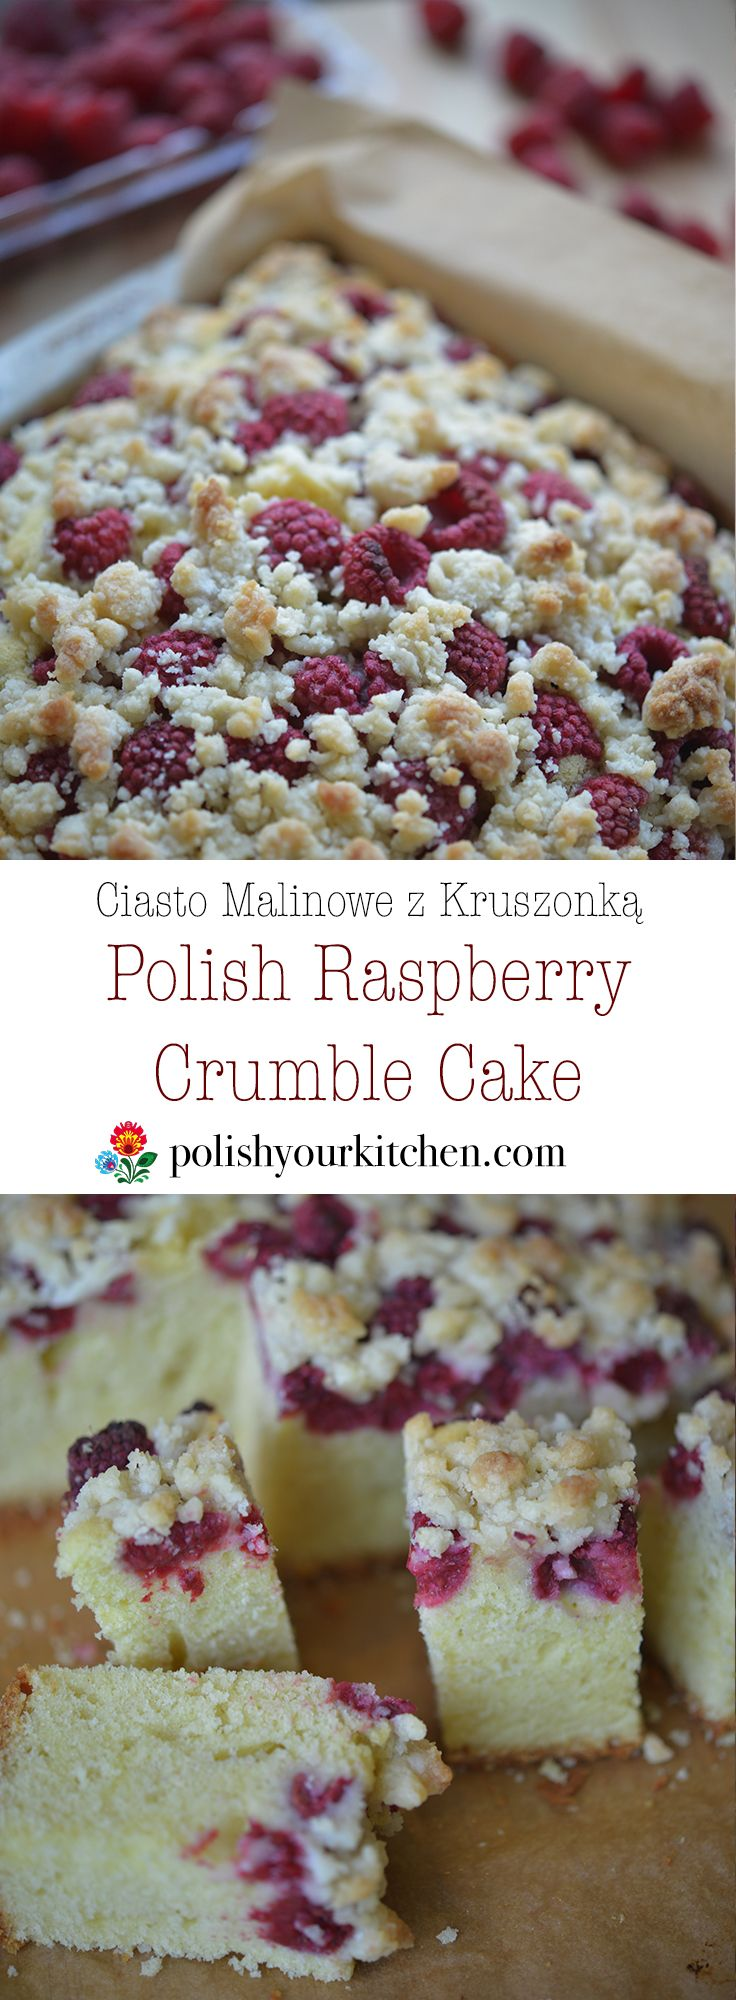 Easy and delicious polish raspberry crumble cake perfect after easy and delicious polish raspberry crumble cake perfect after summer raspberry picking simple recipe for this sweet polish dessert by anna forumfinder Image collections